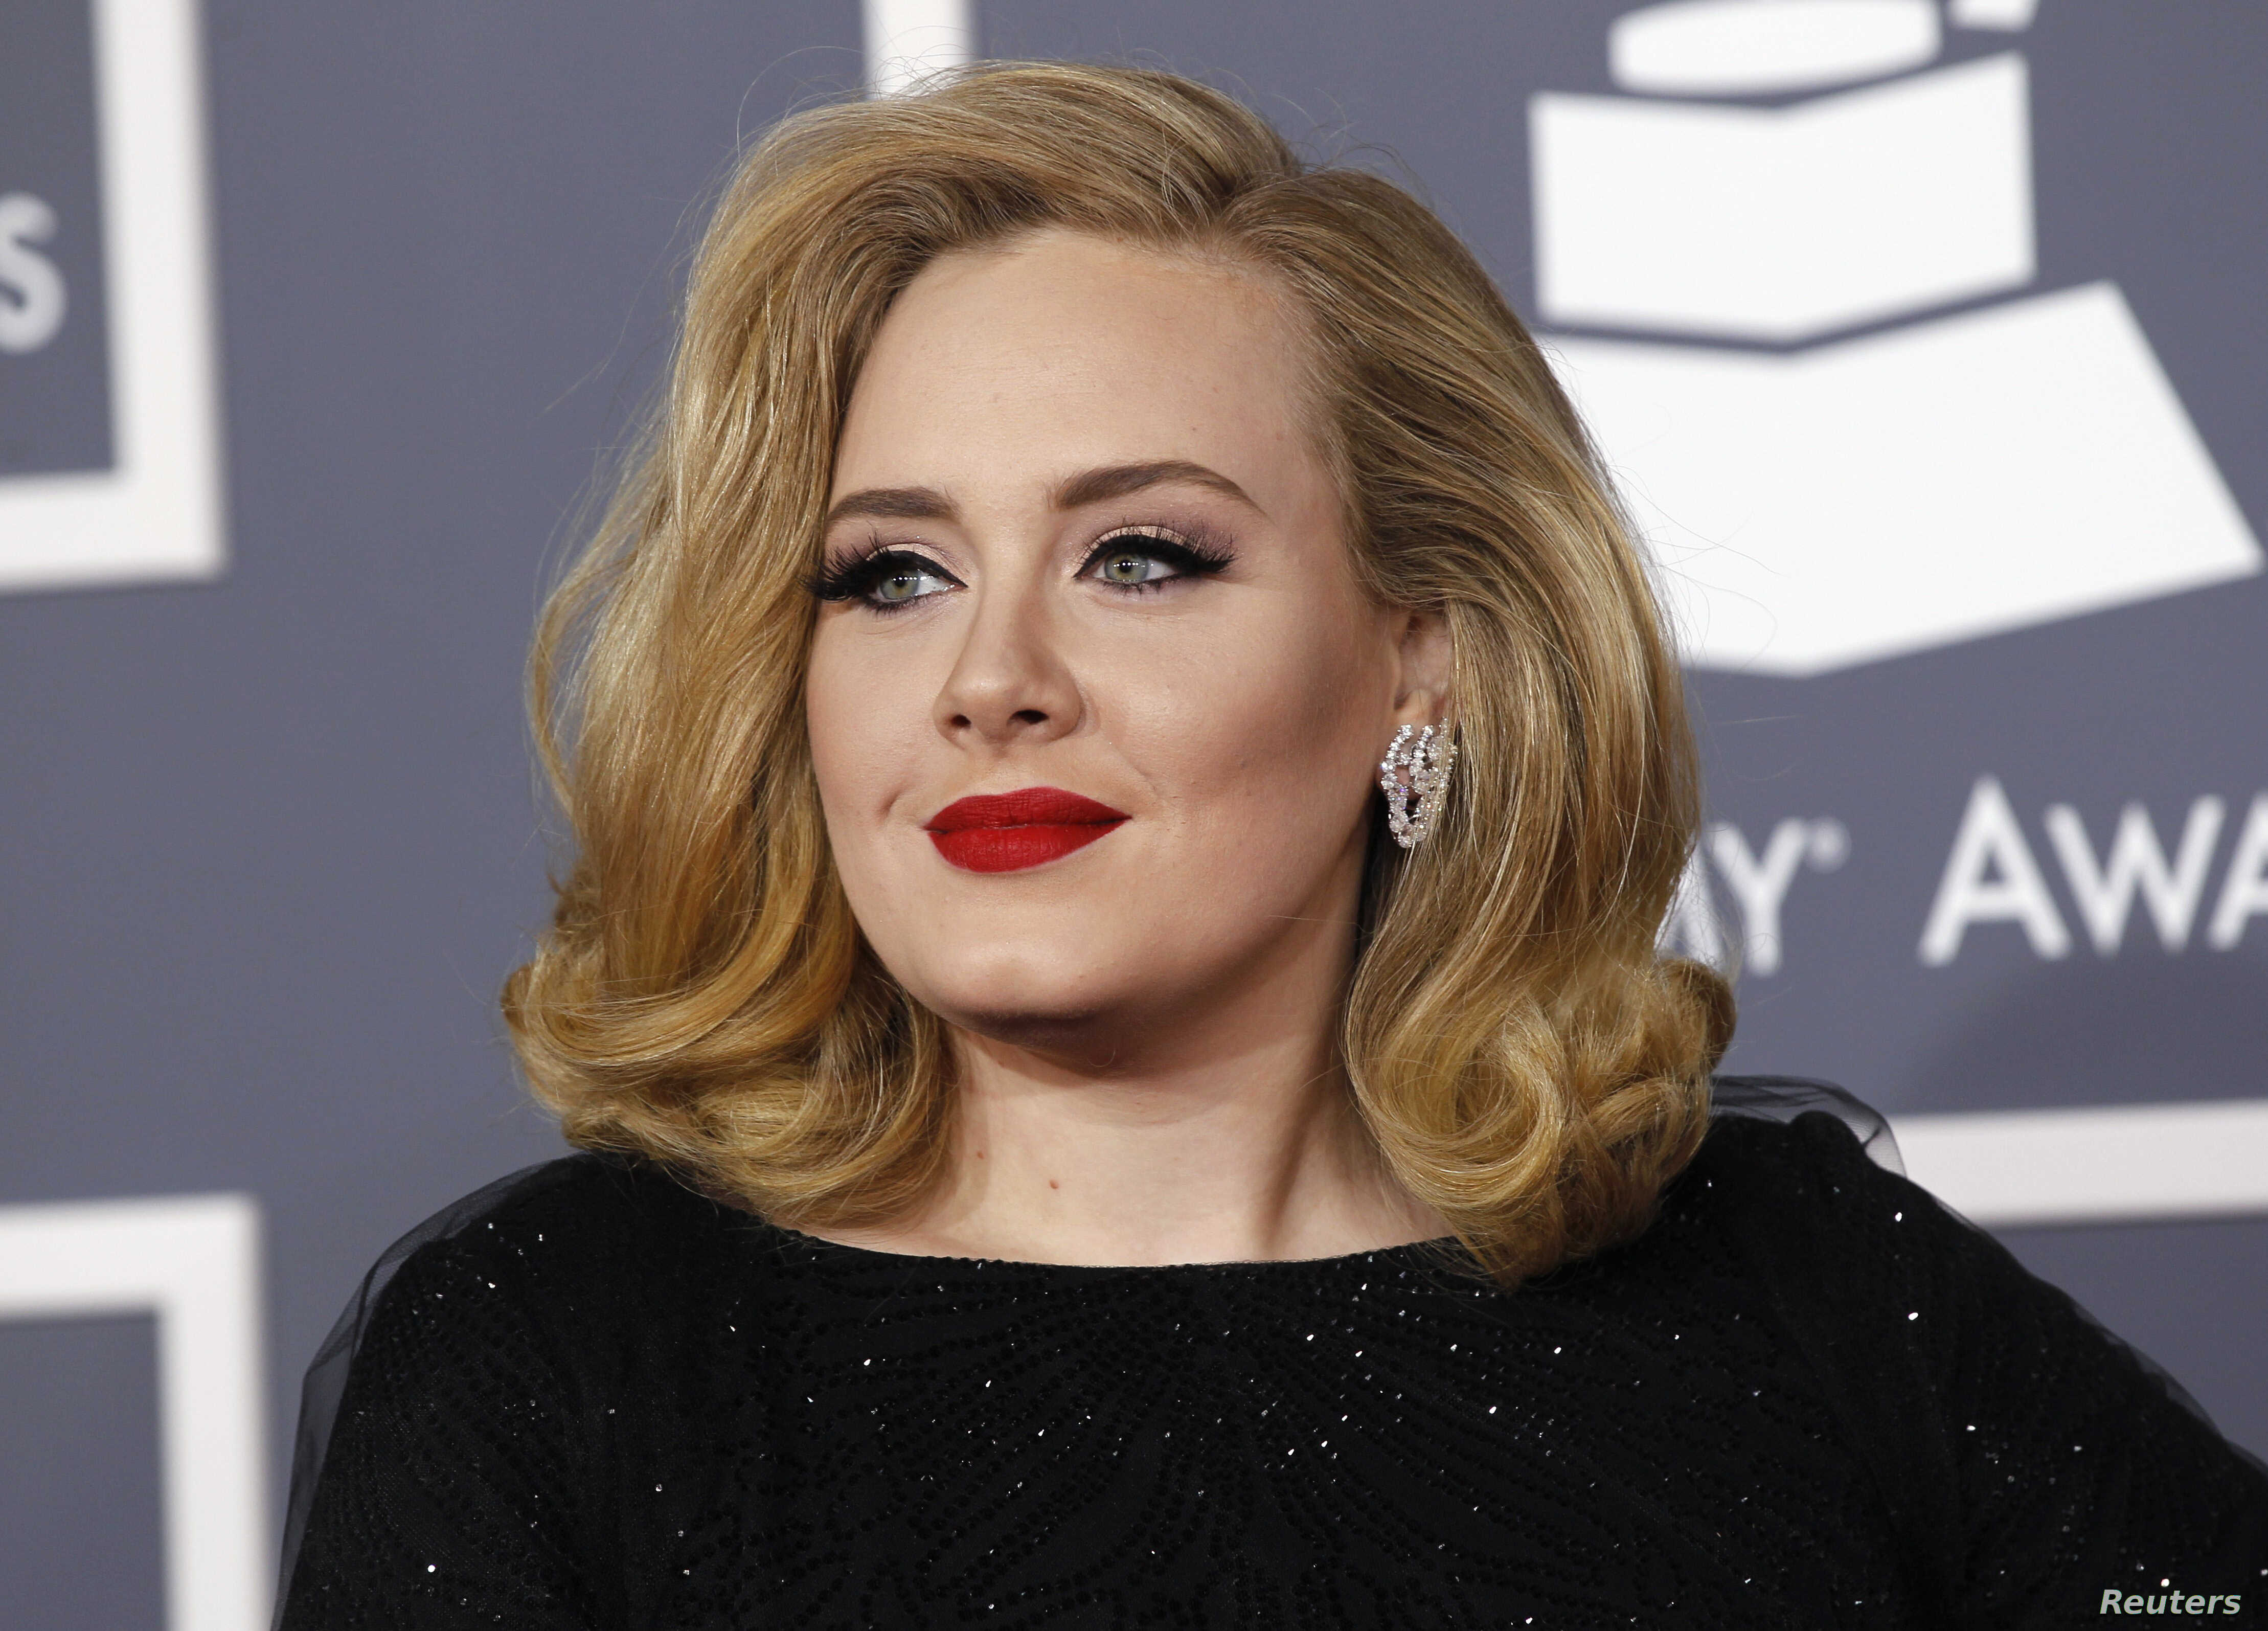 British singer Adele arrives at the 54th annual Grammy Awards in Los Angeles, Calif. Feb. 12, 2012.